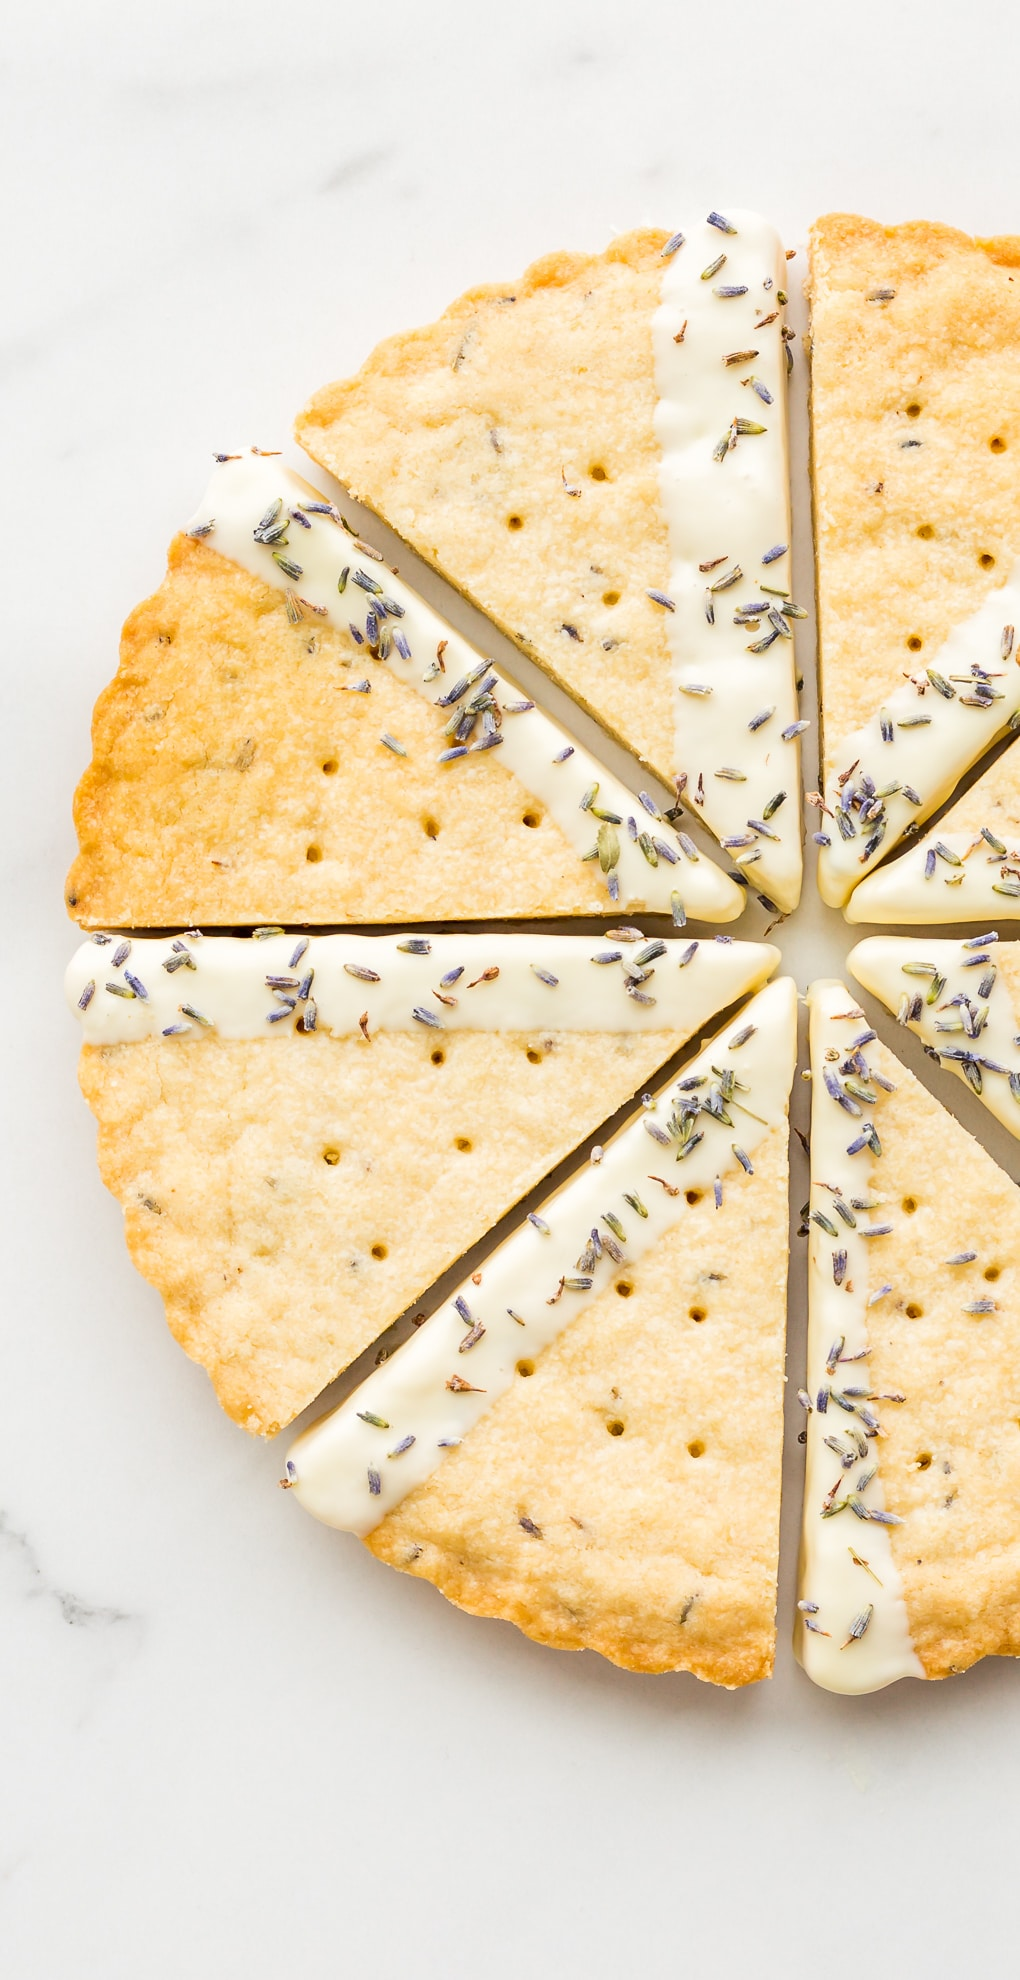 March 2019 smartphone wallpaper of wedges of lavender shortbread cookies dipped in white chocolate and dried lavender buds